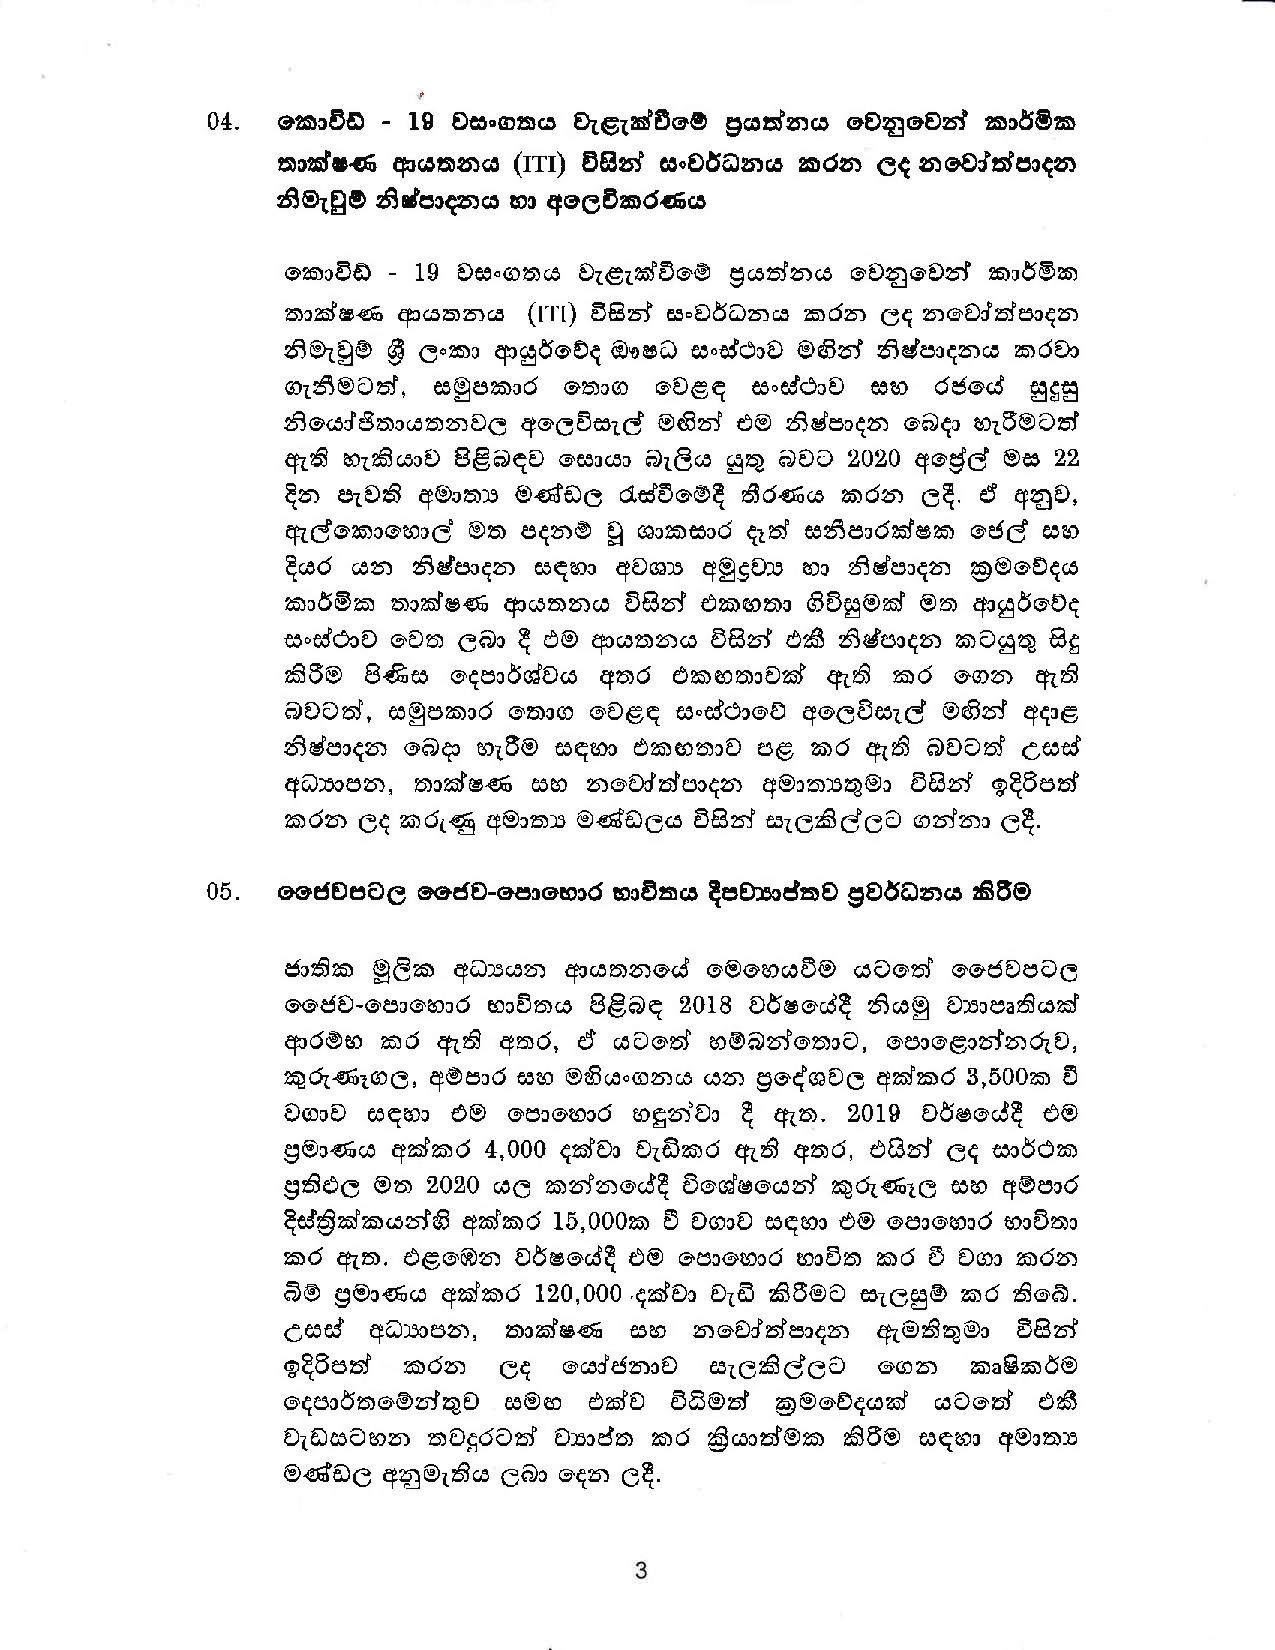 Cabinet Decision on 22.07.2020 page 003